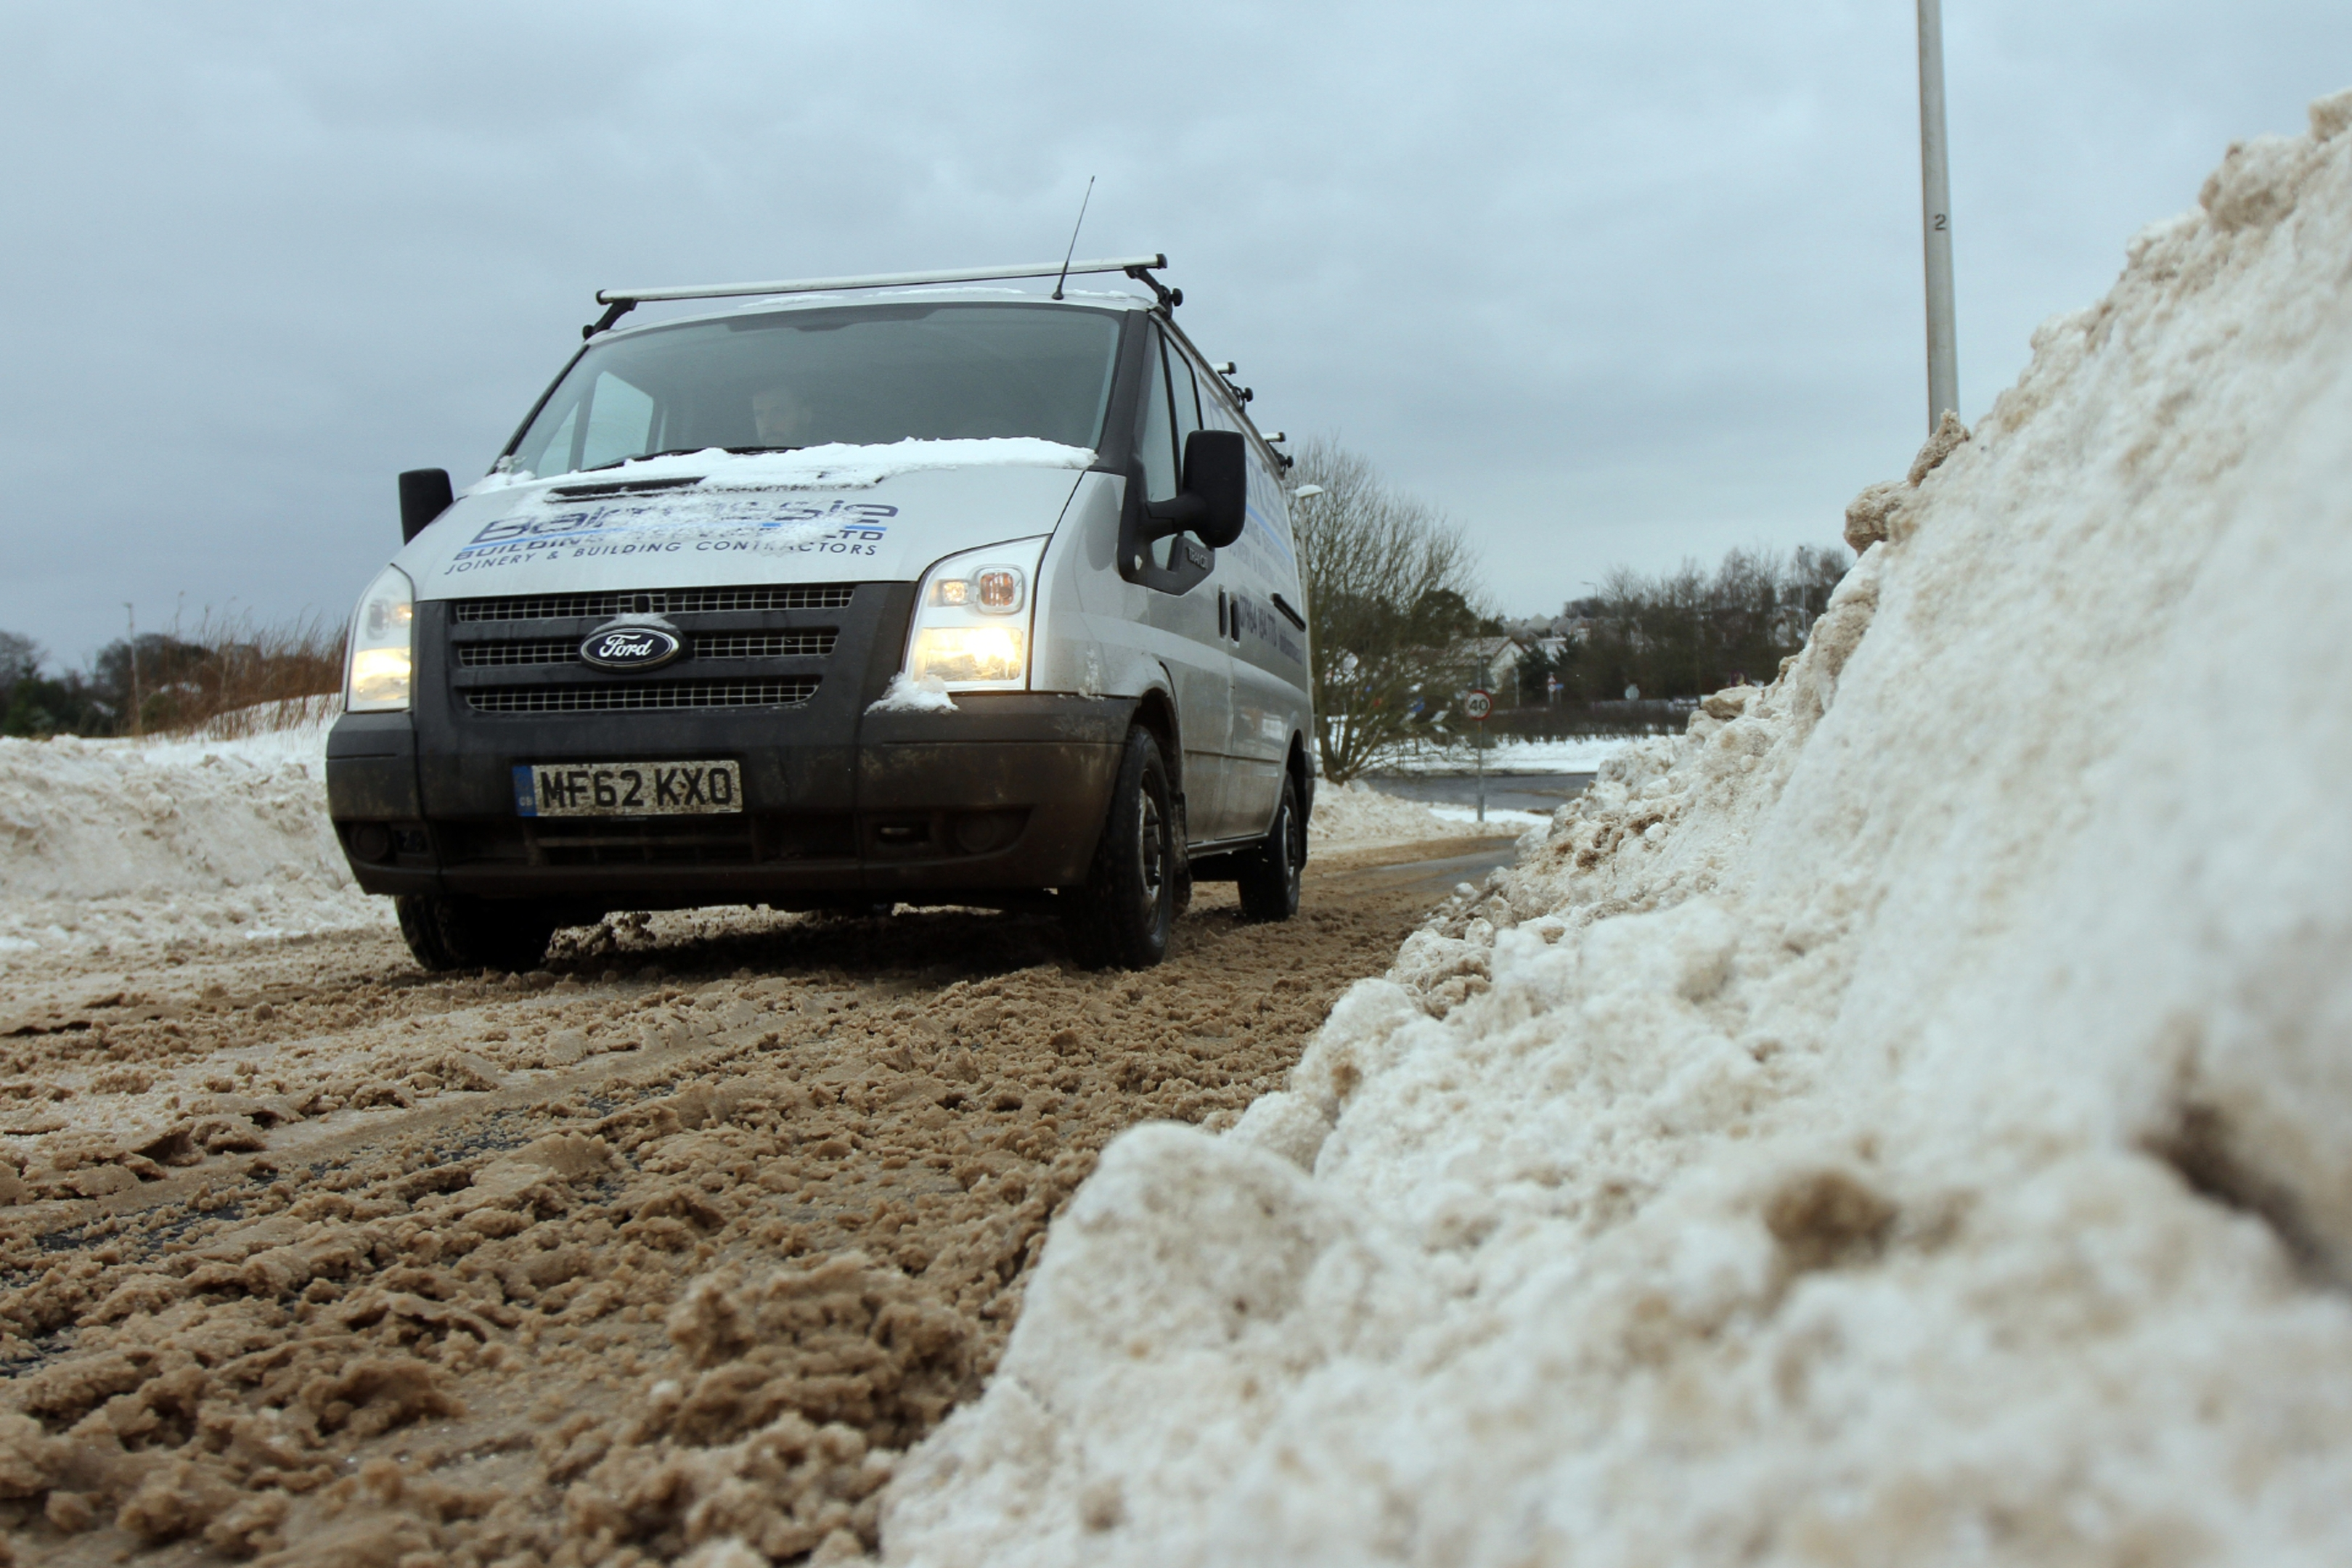 The Beast from the East caused widespread disruption.